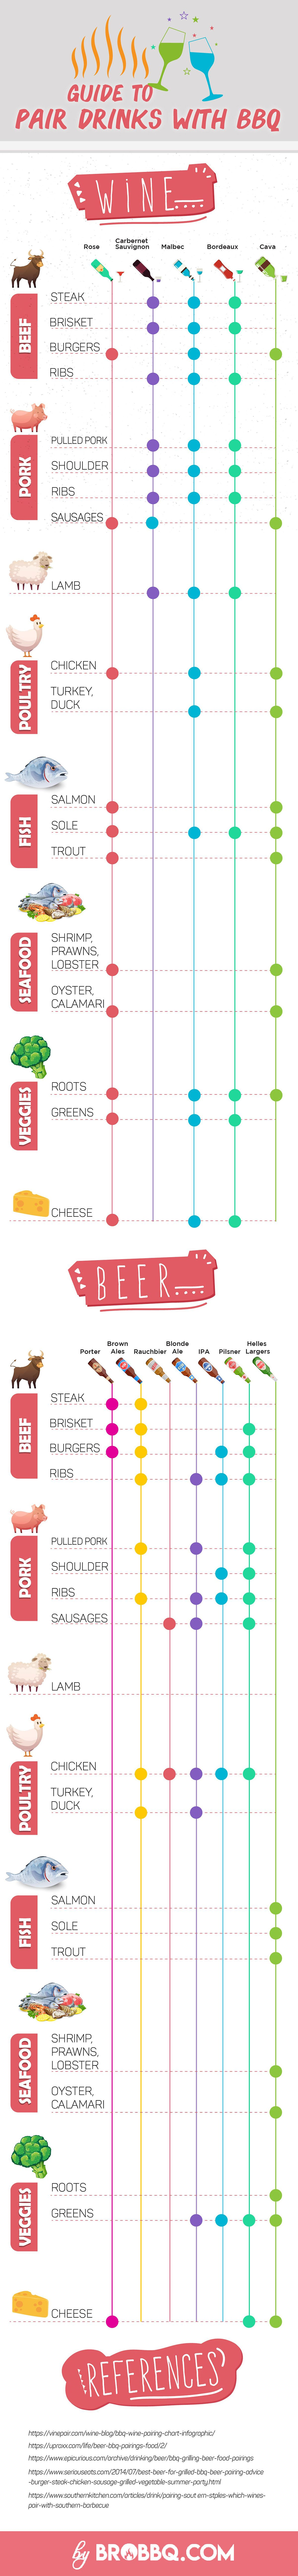 Infographic_The_Perfect_Pairing_Guide_For_All_Your_Barbecues_And_Drinks_Infographic